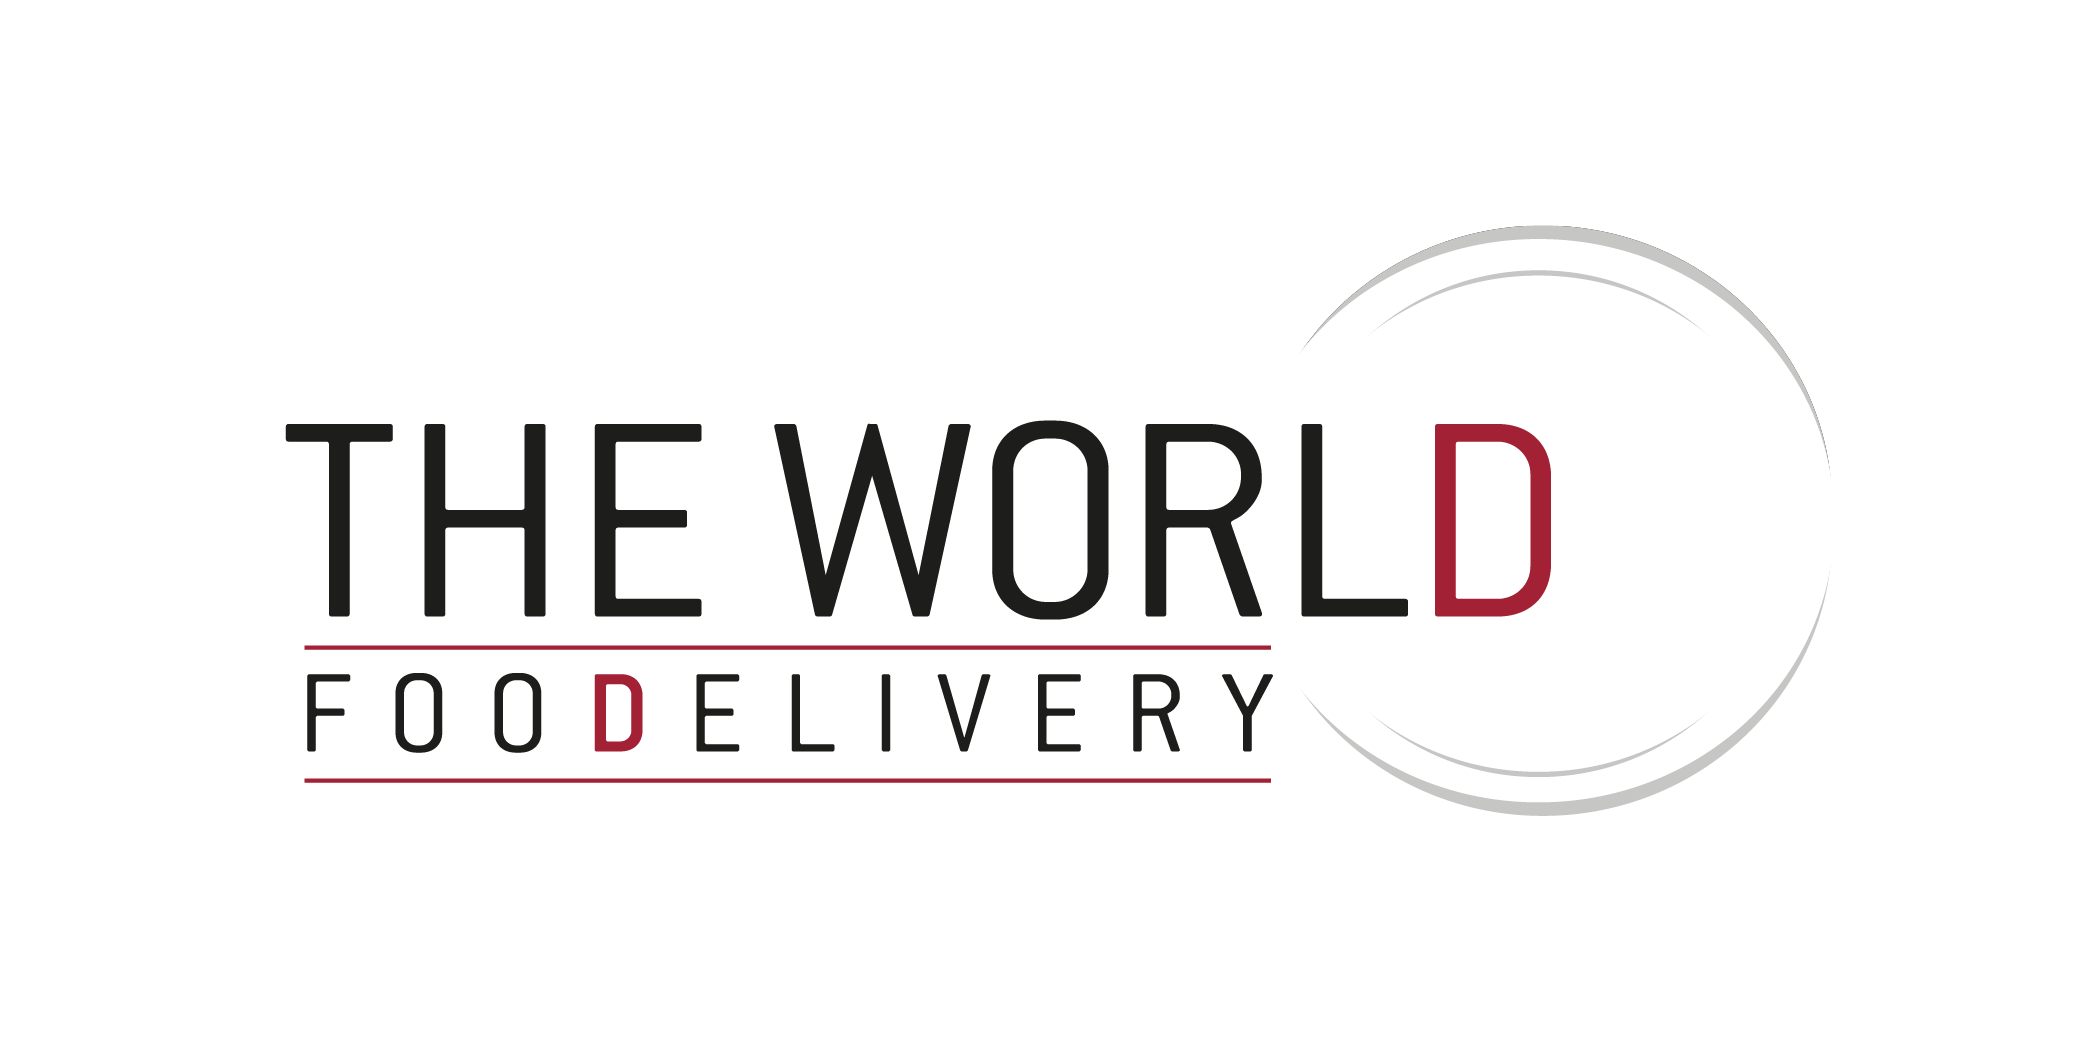 The World Foodelivery Vedano Olona